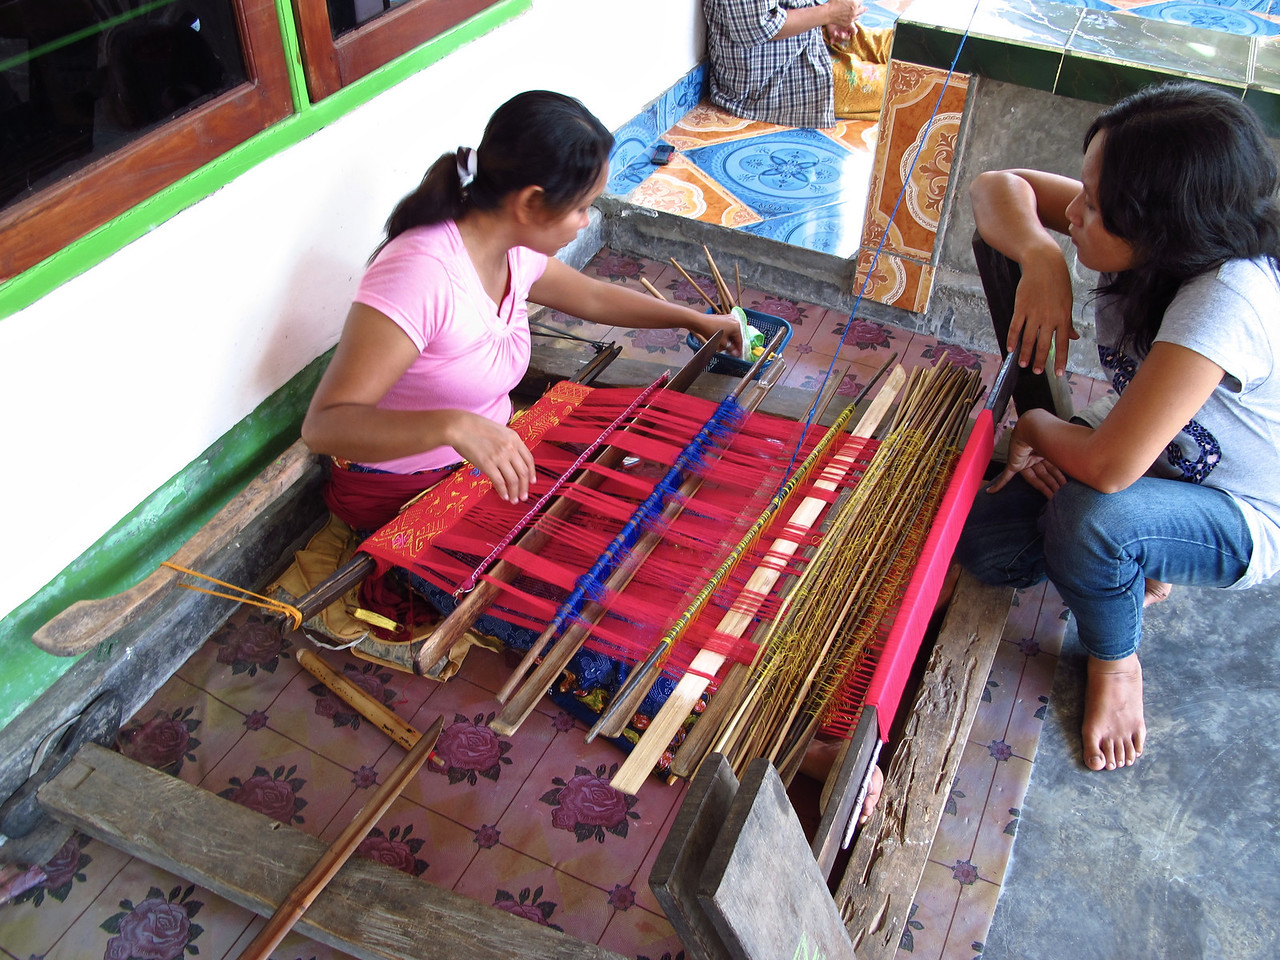 Two main villages on Lombok are known for it's traditional weaving.  One is Sukarara, pictured here in Central Lombok. Typical sarongs and tenun ikat are produced here. The sarong is not only a comfortable article of clothing but can serve as a sheet, towel and multitude of other uses. <br /> <br /> Songket is a fabric that is hand-woven in silk or cotton, and intricately patterned with gold or silver threads. The metallic threads stand out against the background cloth to create a shimmering effect. In the weaving process the metallic threads are inserted in between the silk or cotton weft (latitudinal) threads. It is one of the most complicated hand weaving that usually done by women from generation to generation. The process can take over a month to create one piece of songket.